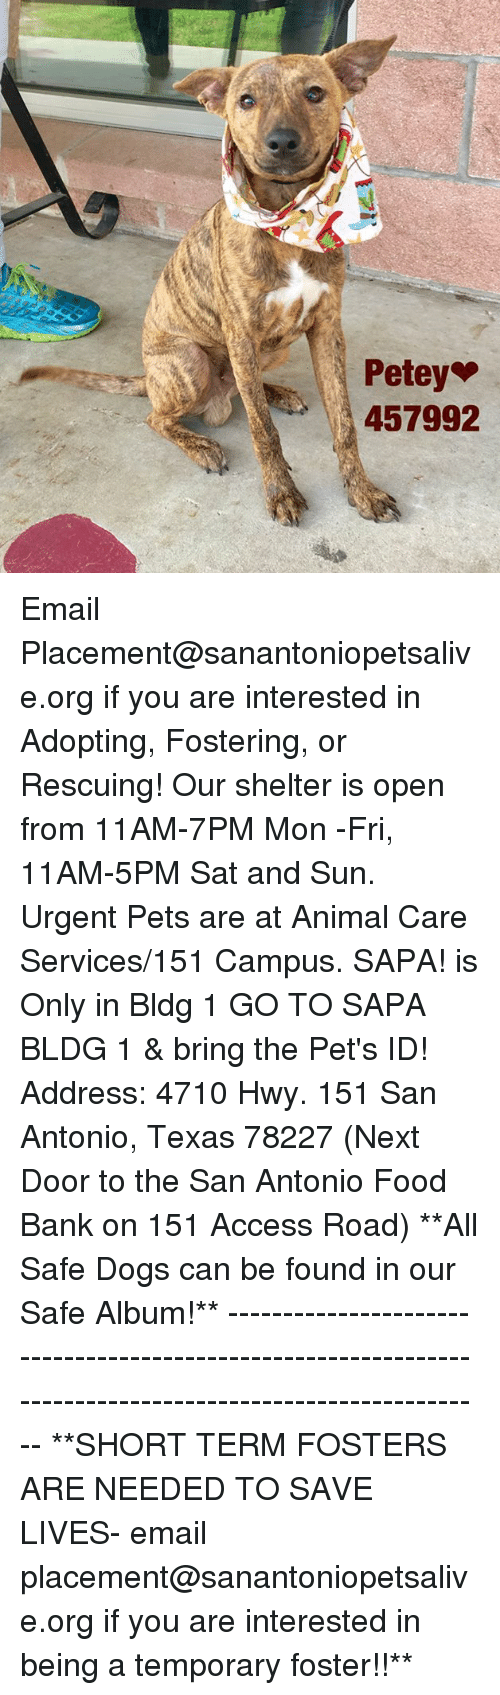 Dogs, Food, and Memes: Petey  457992 Email Placement@sanantoniopetsalive.org if you are interested in Adopting, Fostering, or Rescuing!  Our shelter is open from 11AM-7PM Mon -Fri, 11AM-5PM Sat and Sun.  Urgent Pets are at Animal Care Services/151 Campus. SAPA! is Only in Bldg 1 GO TO SAPA BLDG 1 & bring the Pet's ID! Address: 4710 Hwy. 151 San Antonio, Texas 78227 (Next Door to the San Antonio Food Bank on 151 Access Road)  **All Safe Dogs can be found in our Safe Album!** ---------------------------------------------------------------------------------------------------------- **SHORT TERM FOSTERS ARE NEEDED TO SAVE LIVES- email placement@sanantoniopetsalive.org if you are interested in being a temporary foster!!**